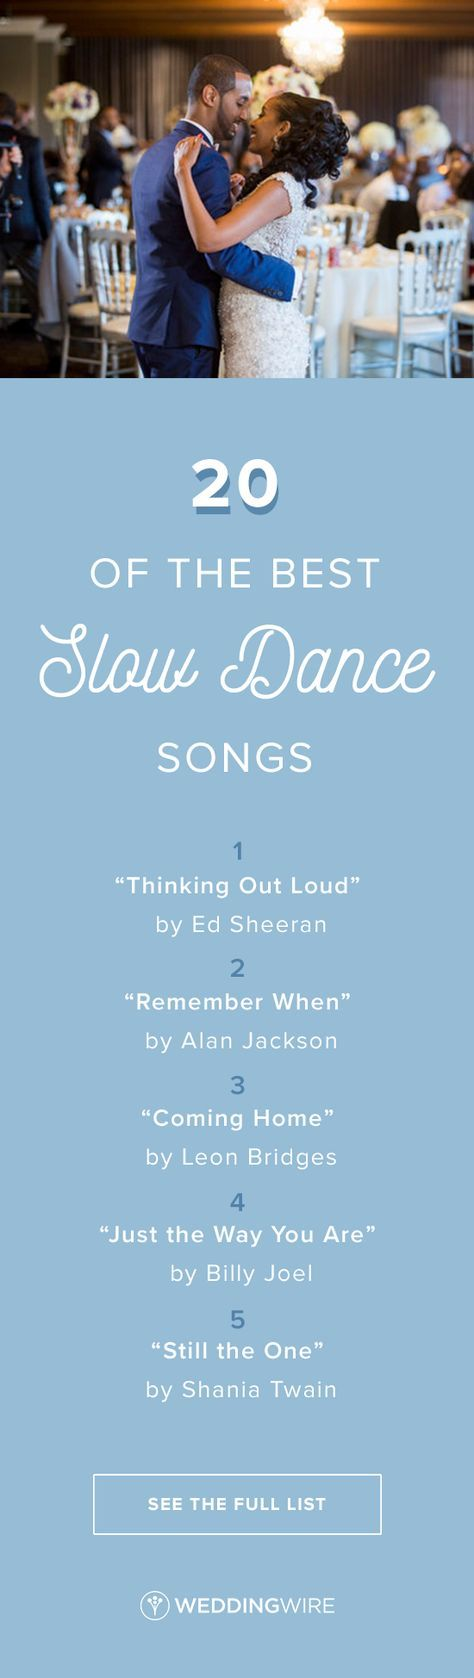 Wedding Quotes : 20 of the Best Slow Dance Songs for Your Wedding ...